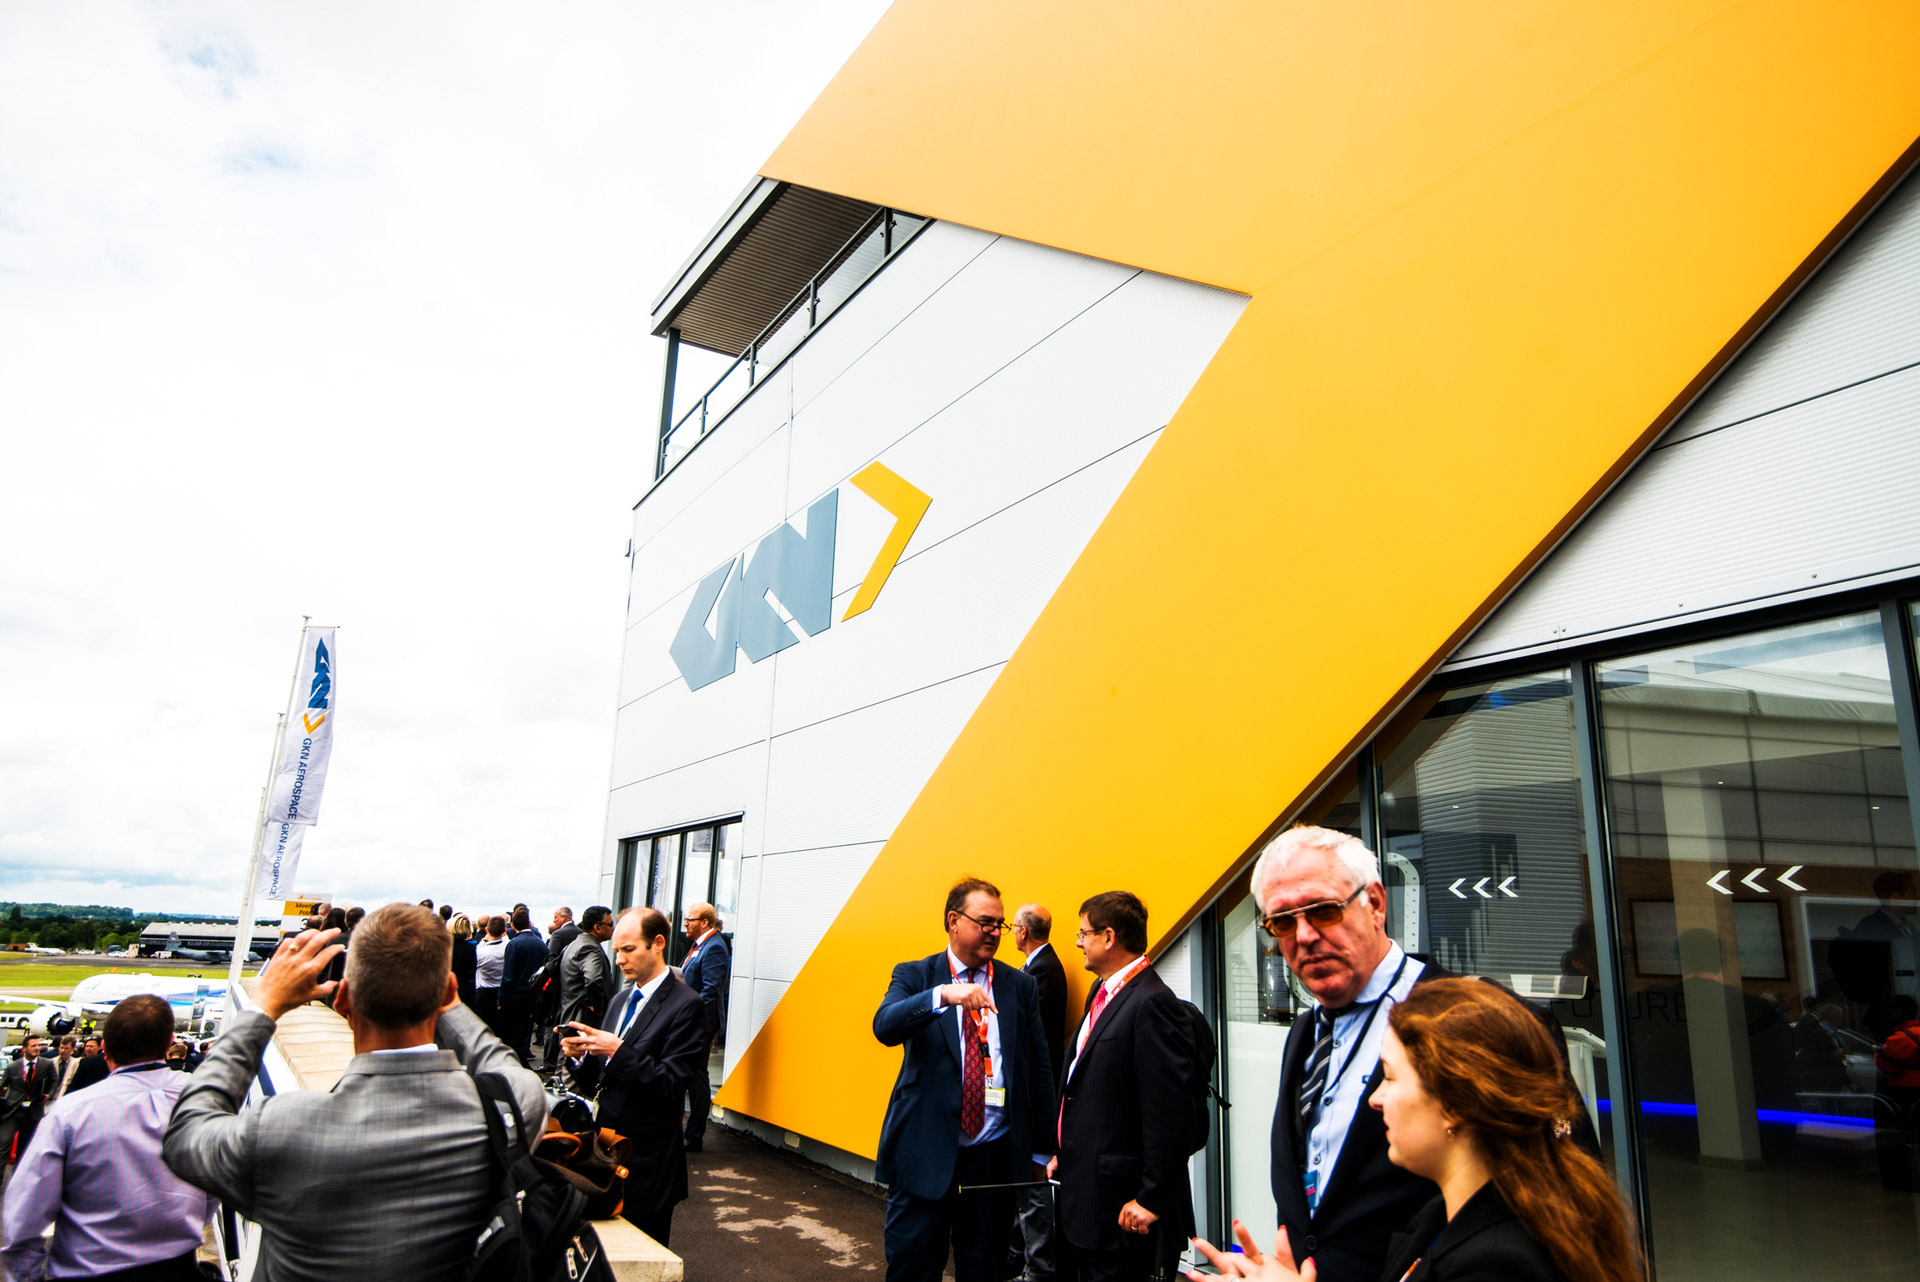 GKN Pavilion at Farnborough International Airshow 2016 design and build by Ouno Creative, Hampshire.